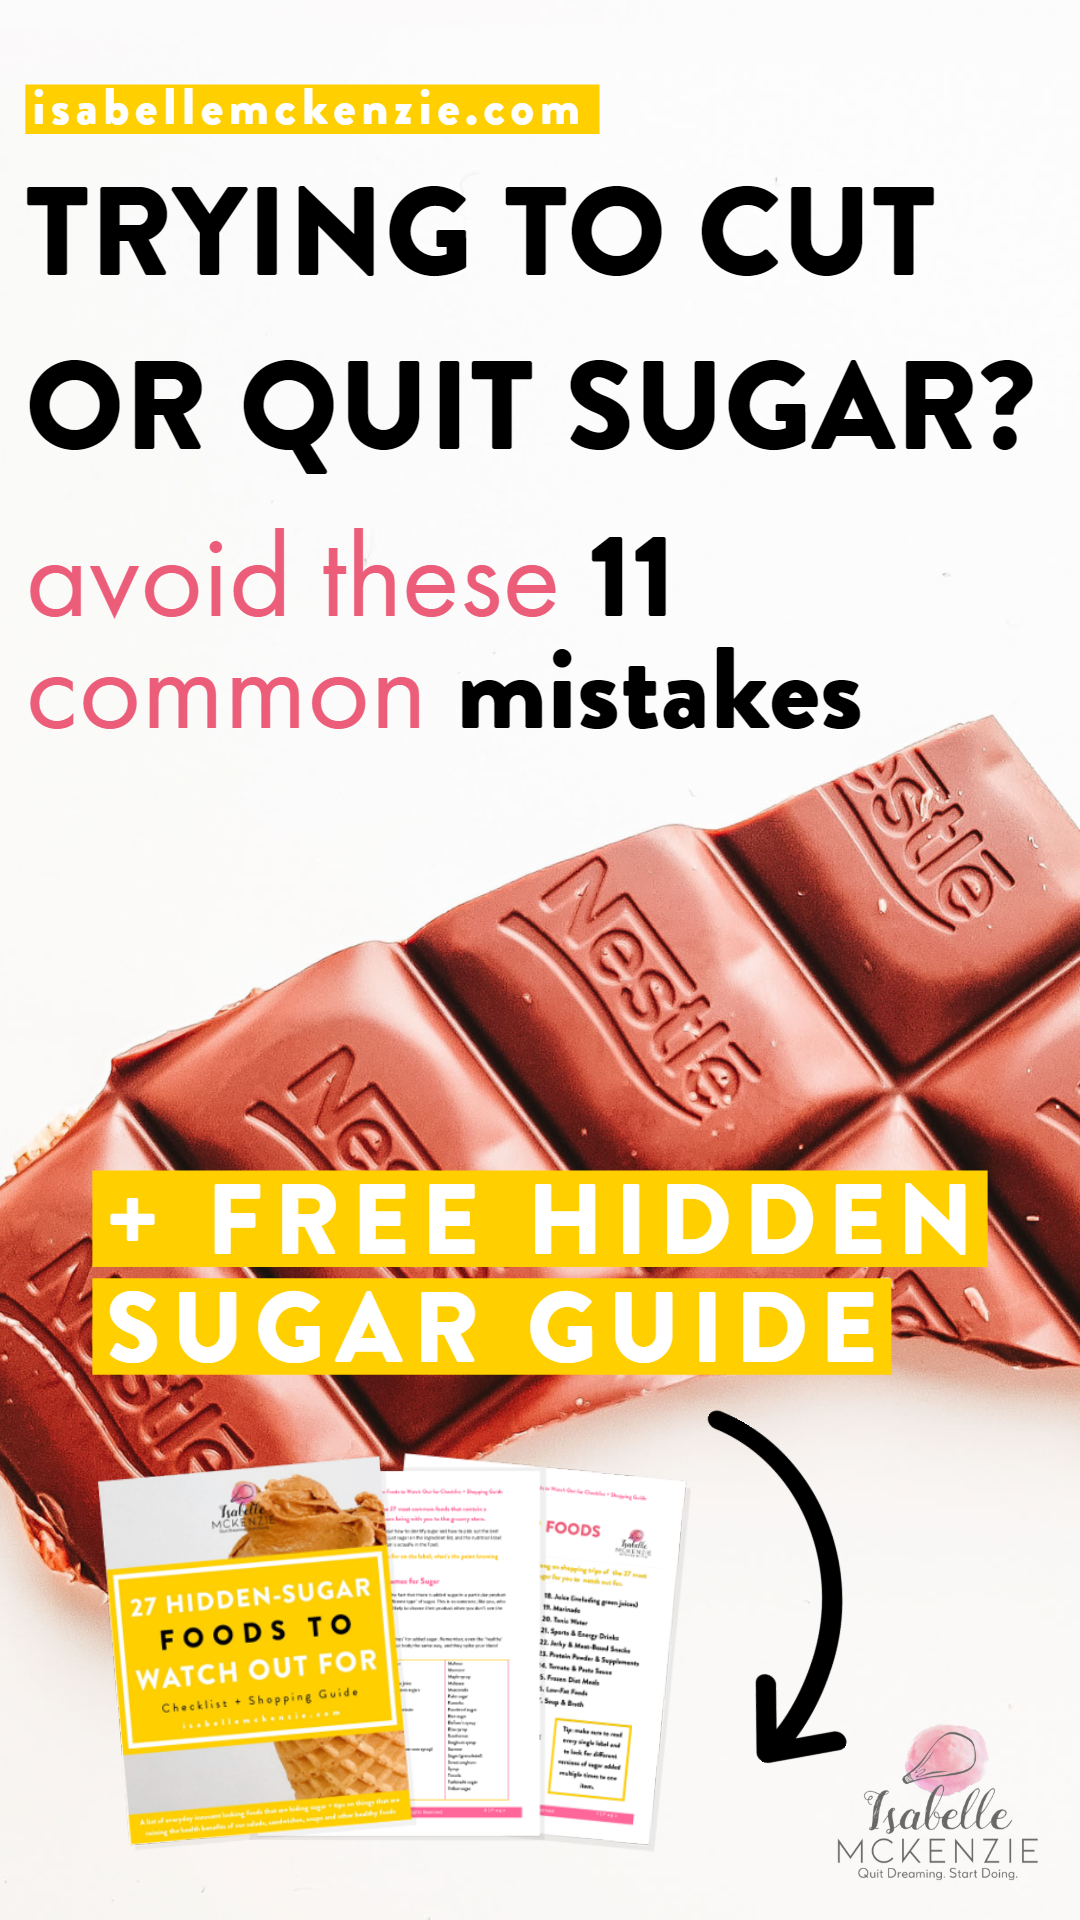 Trying to Cut or Quit Sugar? Avoid These 11 Common Mistakes - Isabelle McKenzie